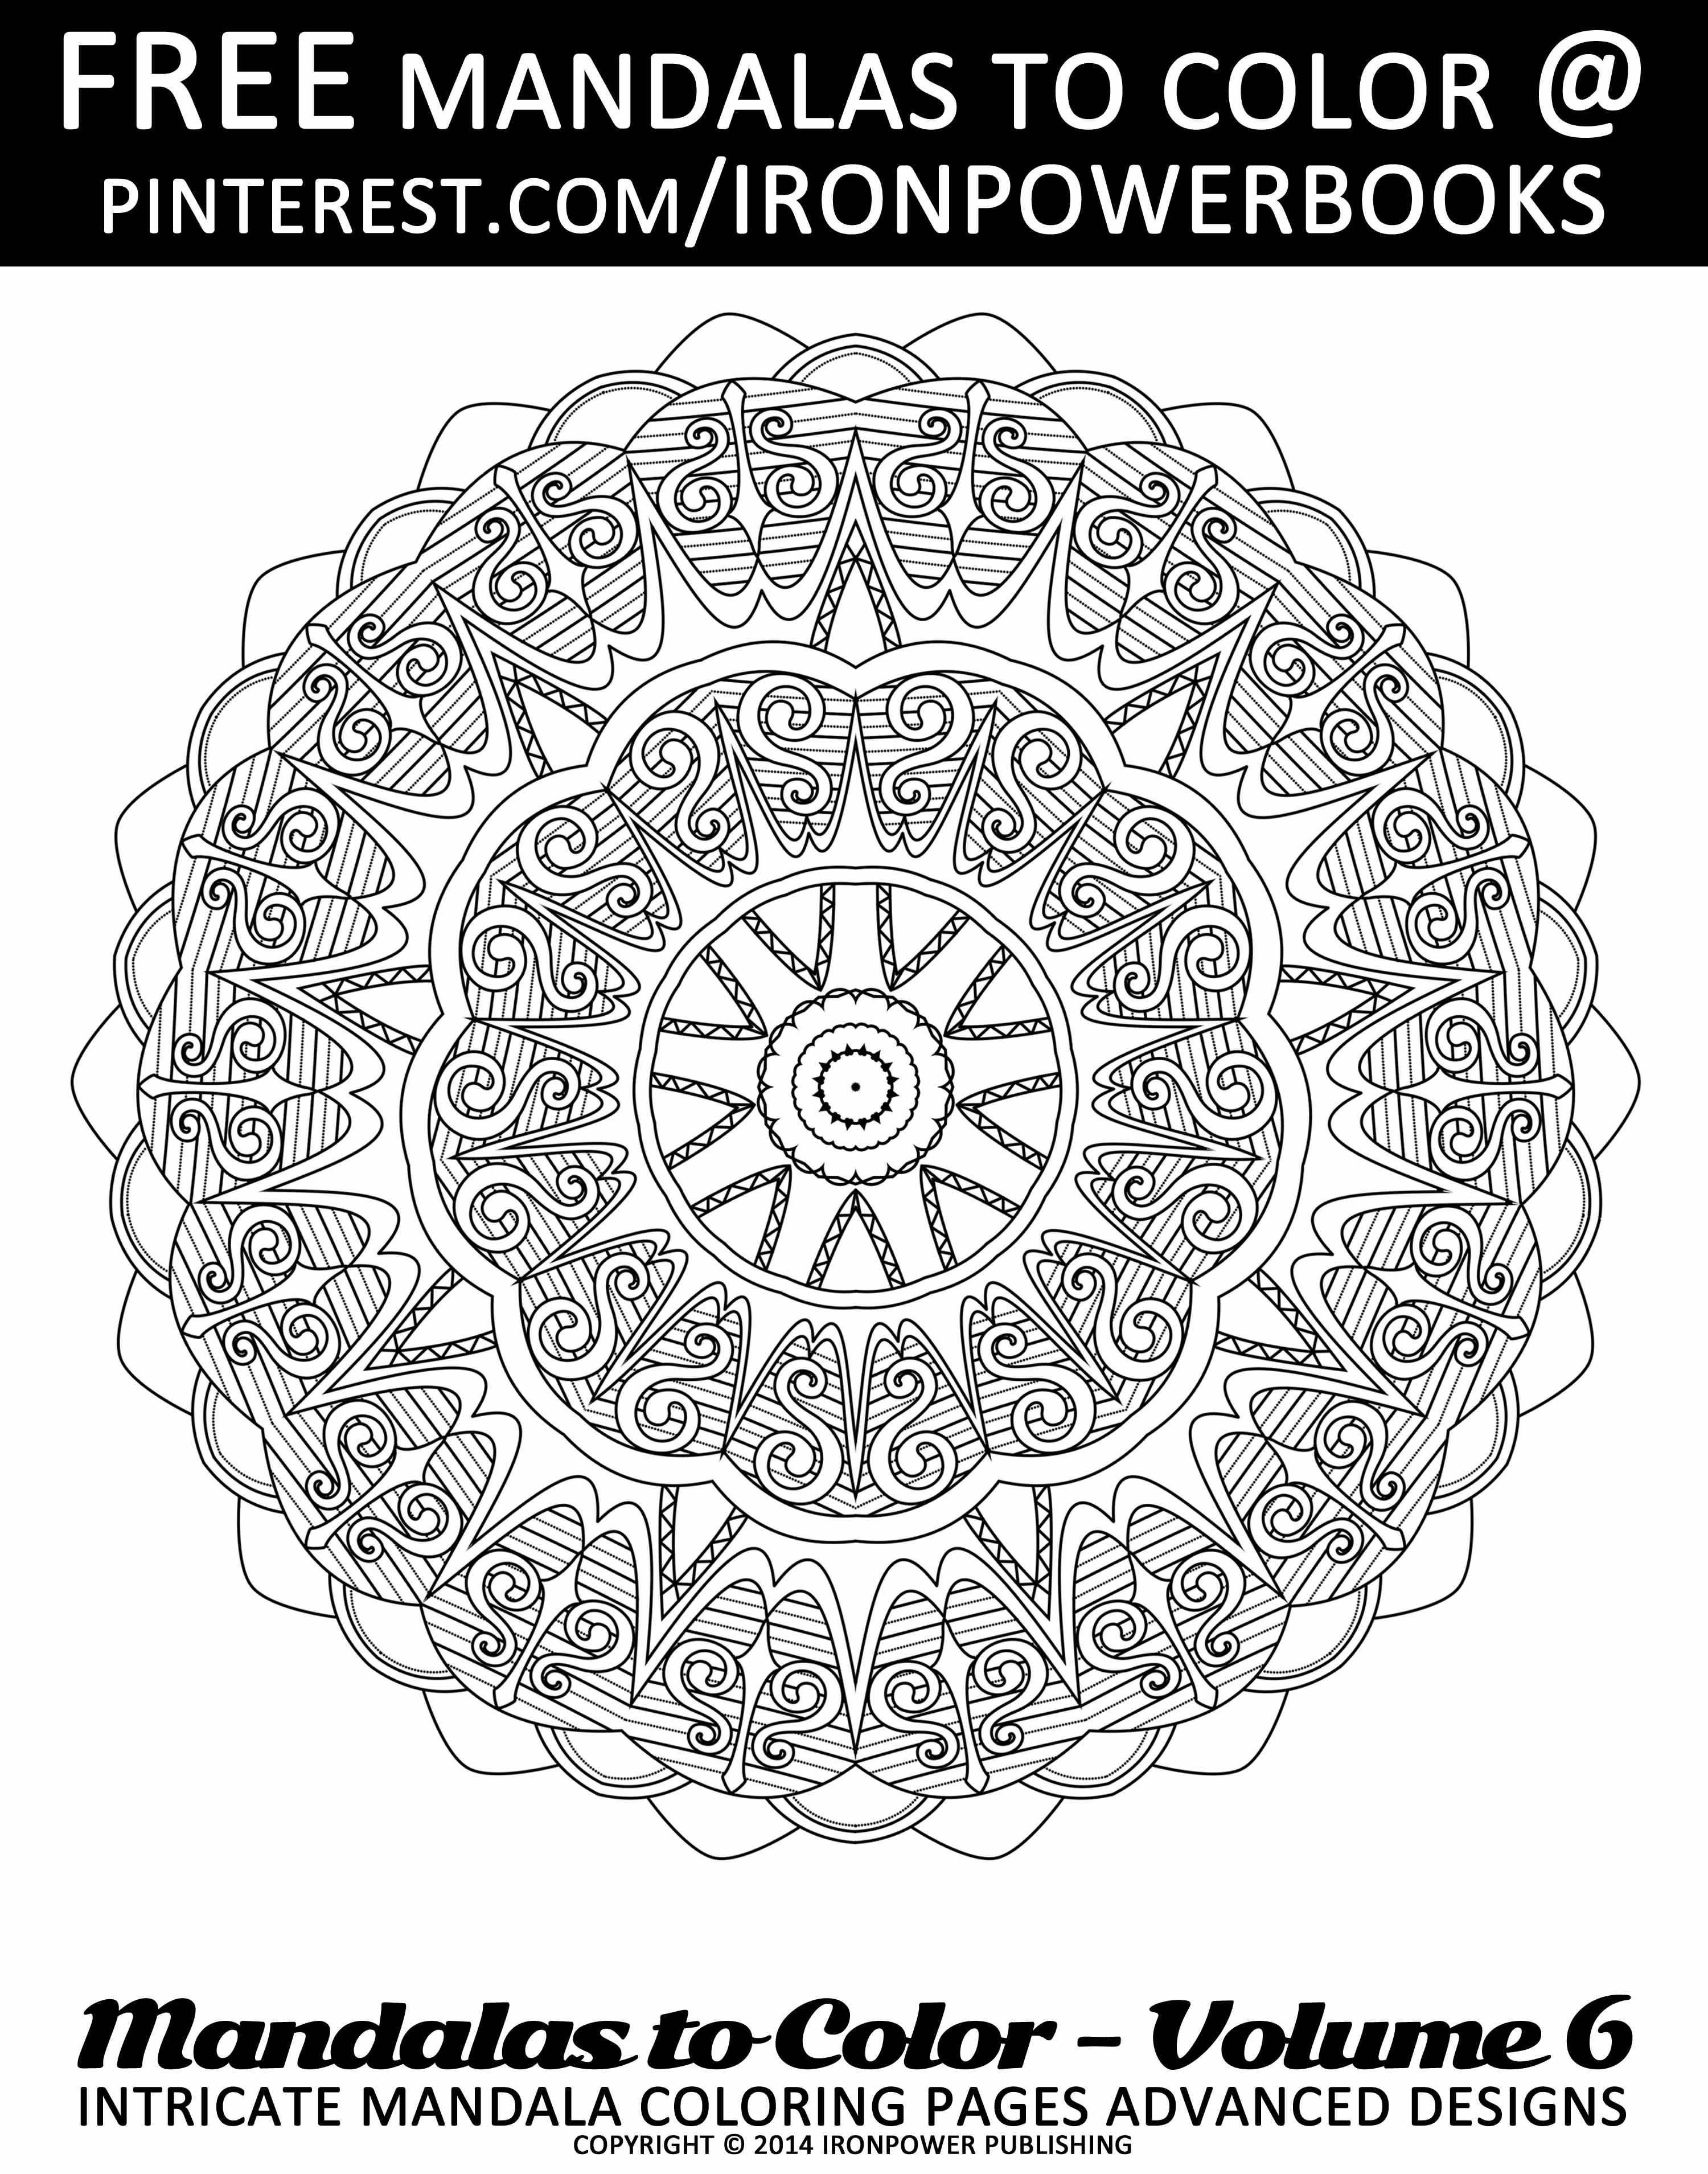 Free Printable Intricate Mandala Coloring Page Color For Hours And Hours Follow Our Boards For More Mandala Coloring Pages Mandala Coloring Coloring Pages